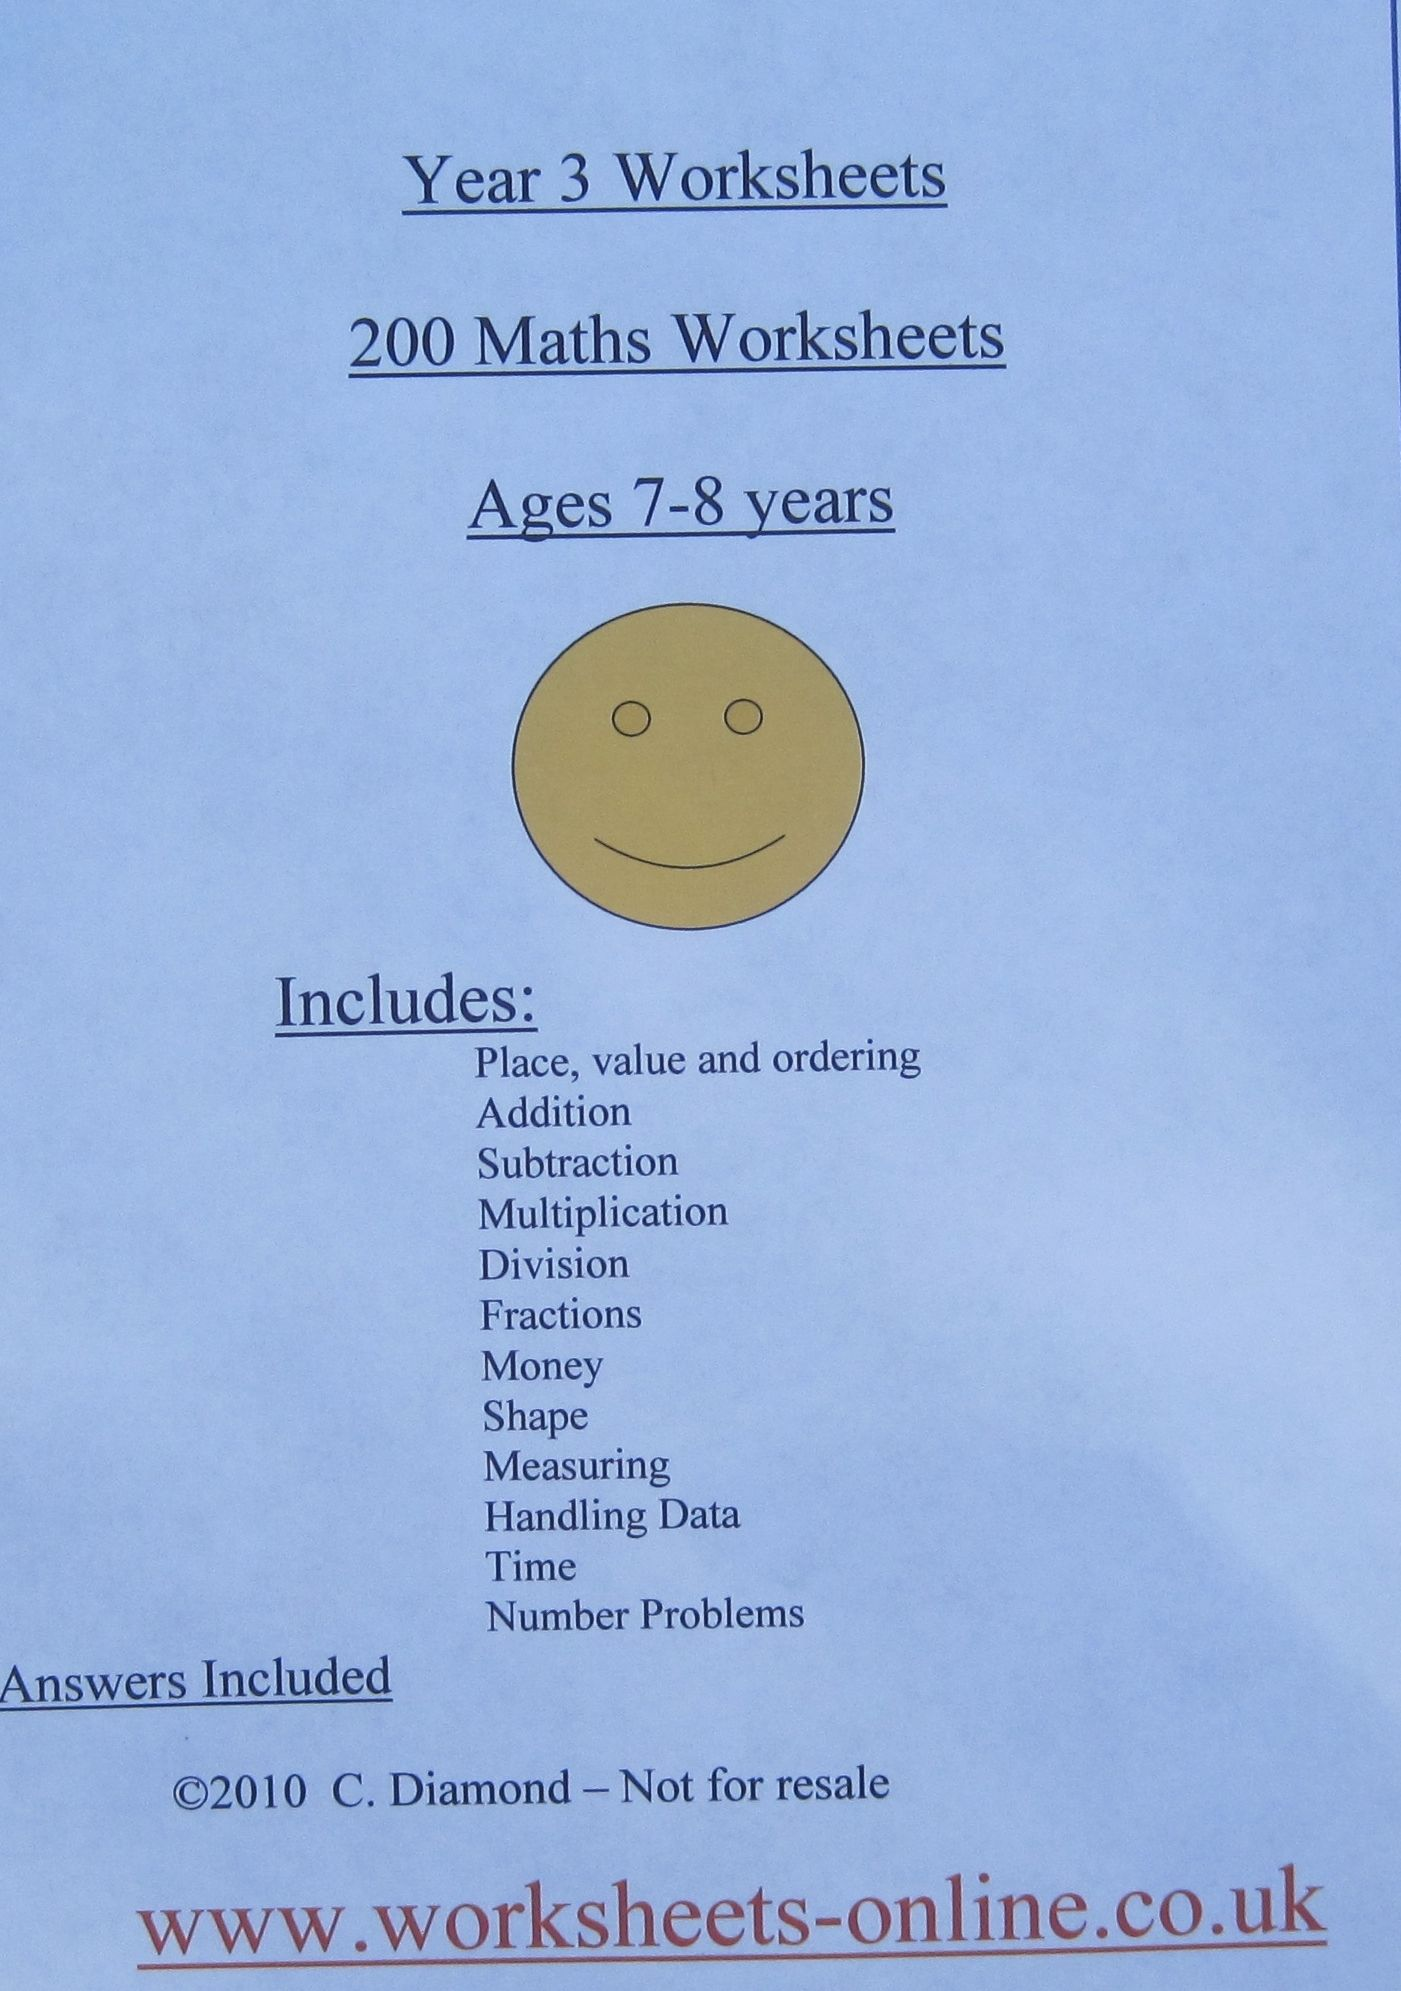 medium resolution of 200 Year 3 Maths Worksheets for children aged 7 - 8 years old.   Year 3  maths worksheets